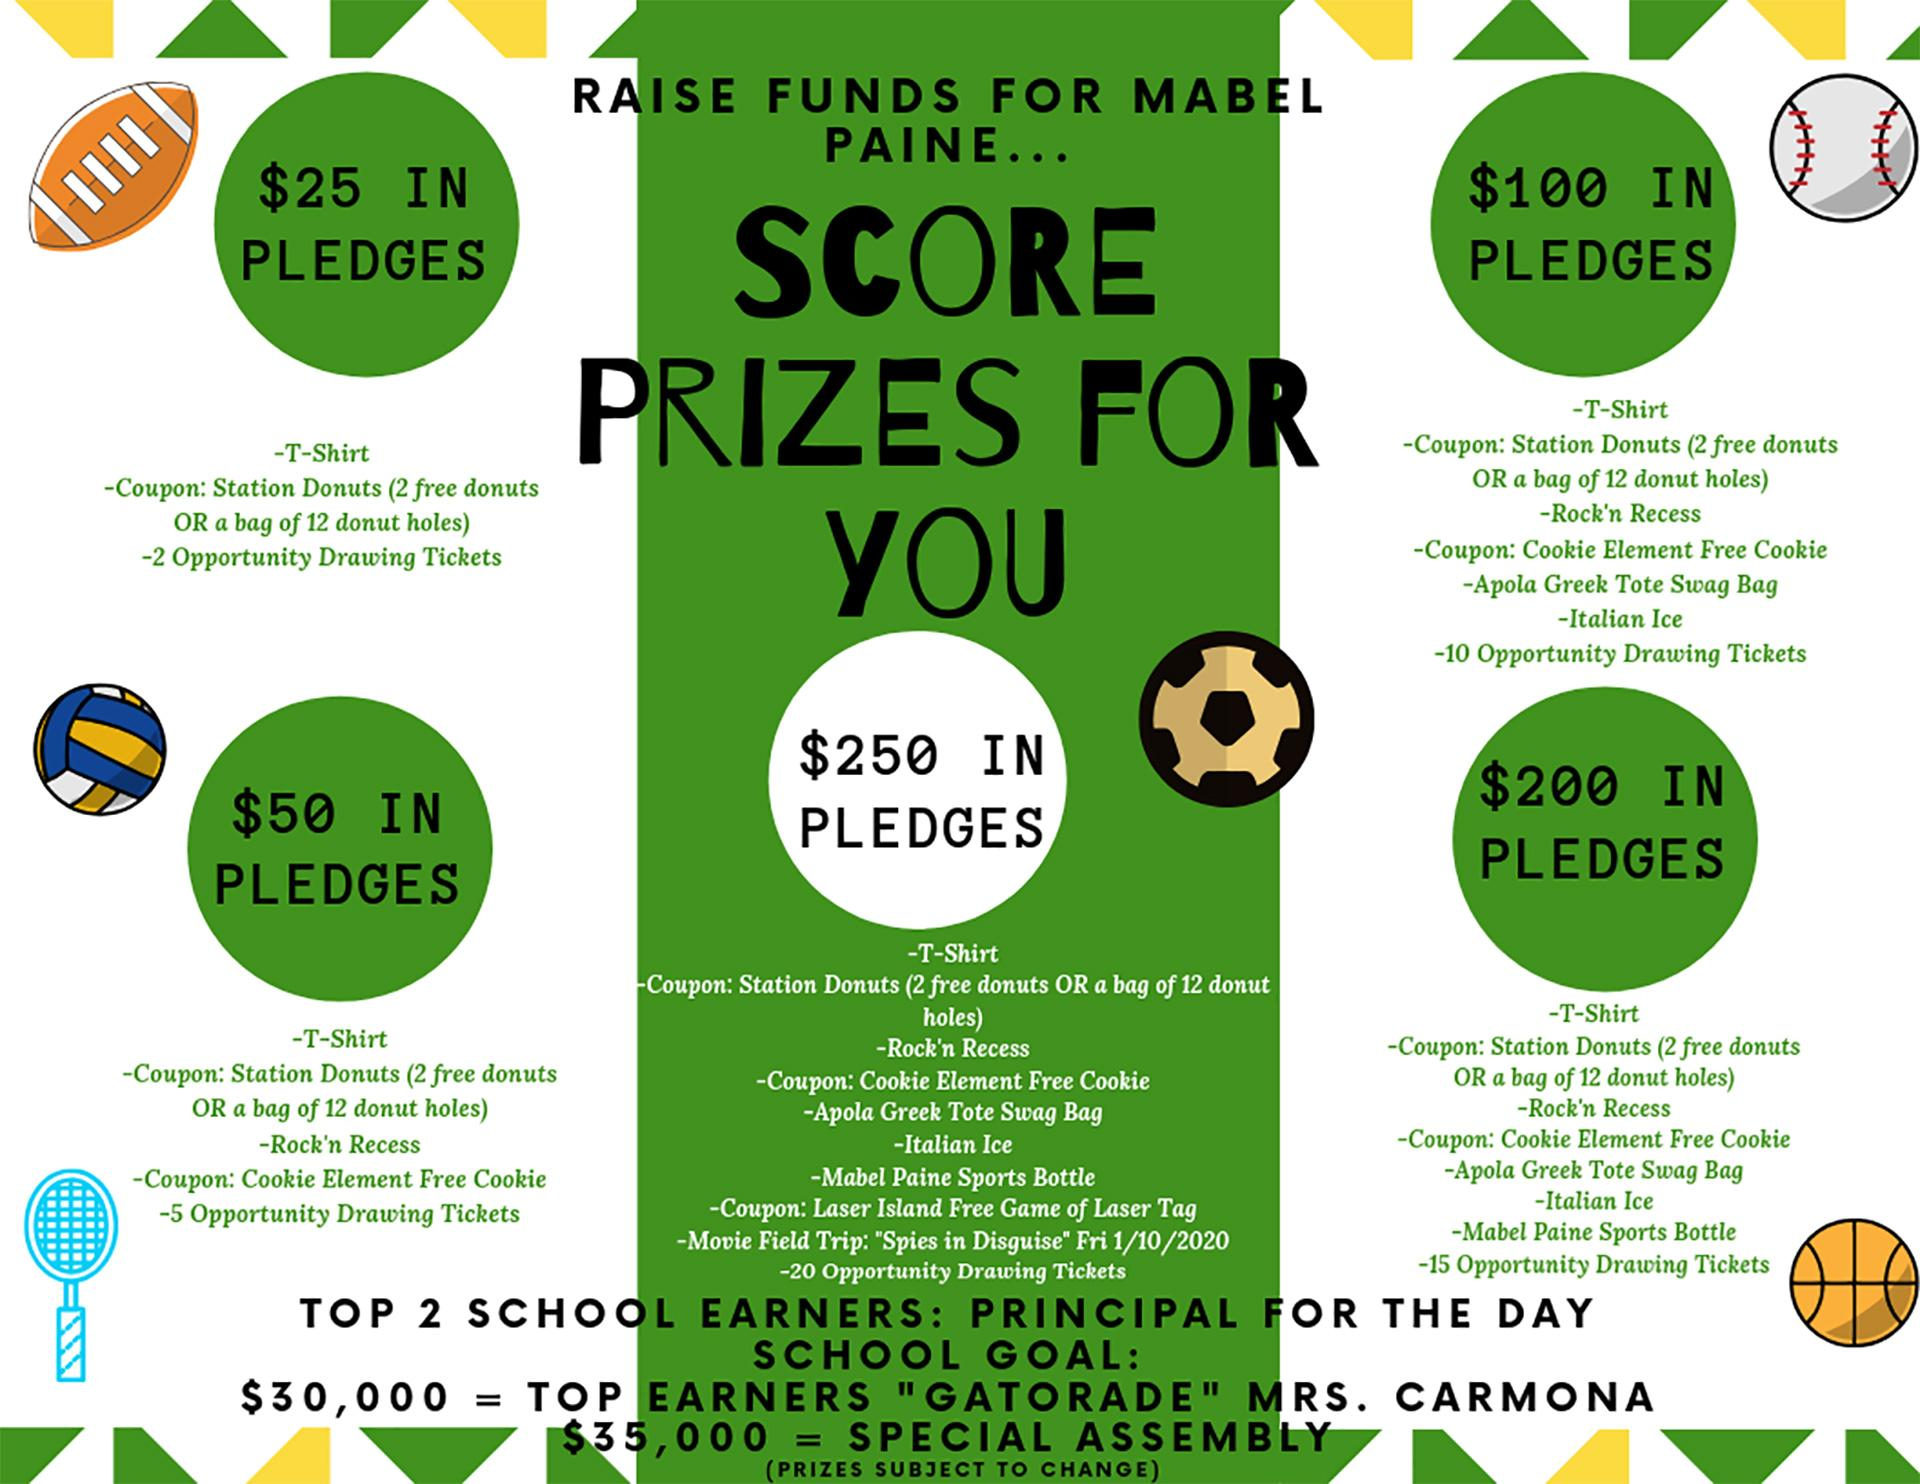 Raise Funds for Mabel Paine... Score Prizes for You!